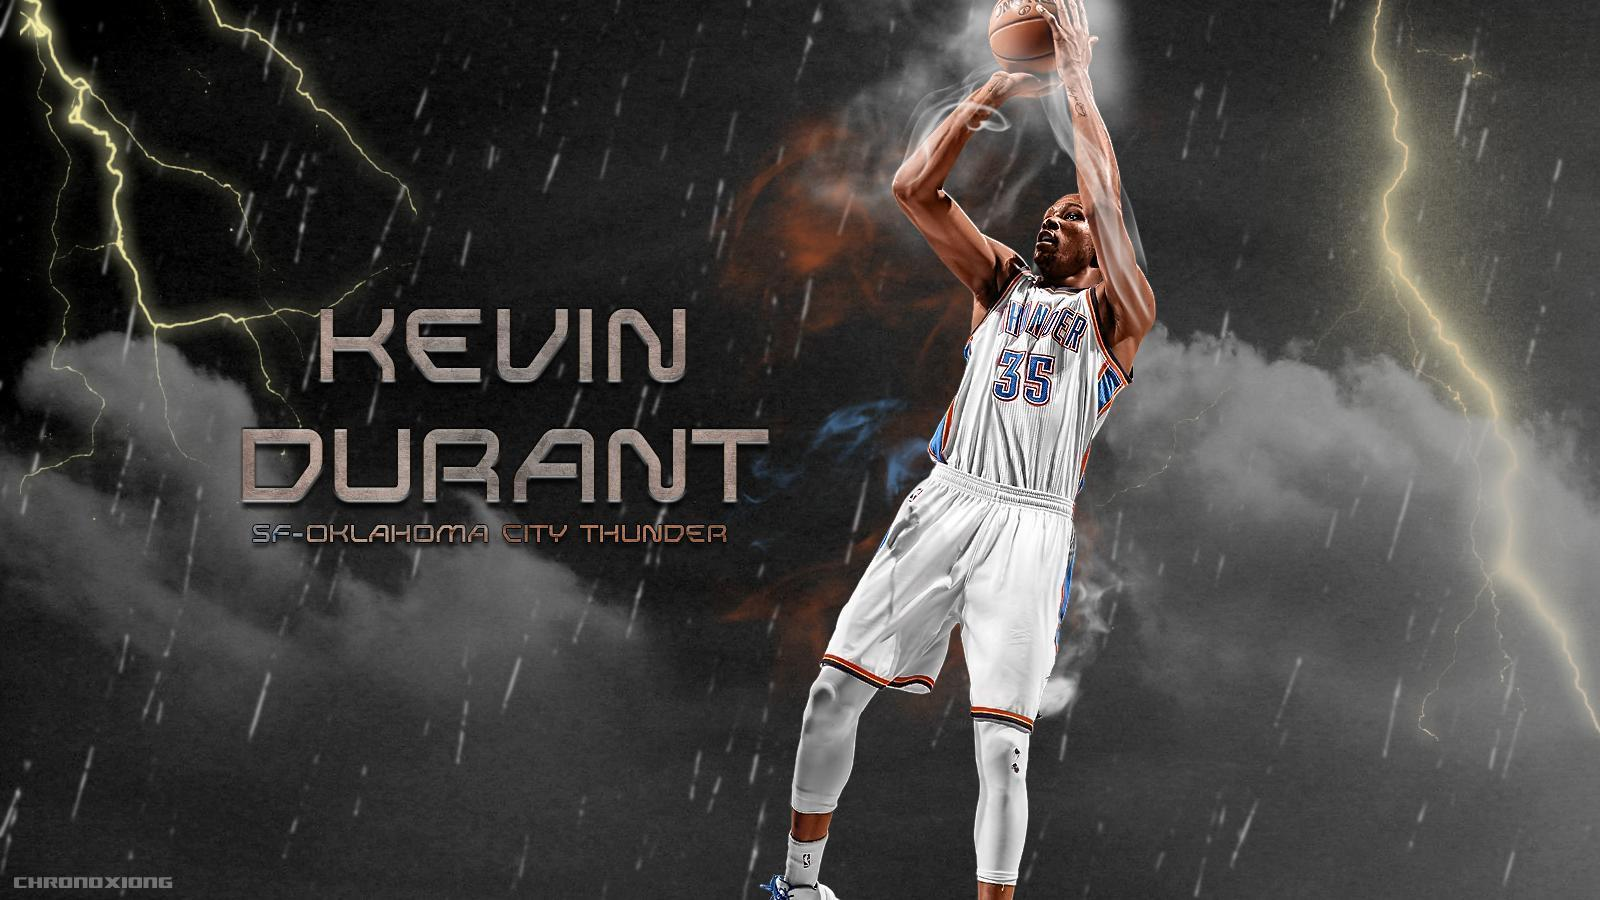 kevin durant wallpaper hd